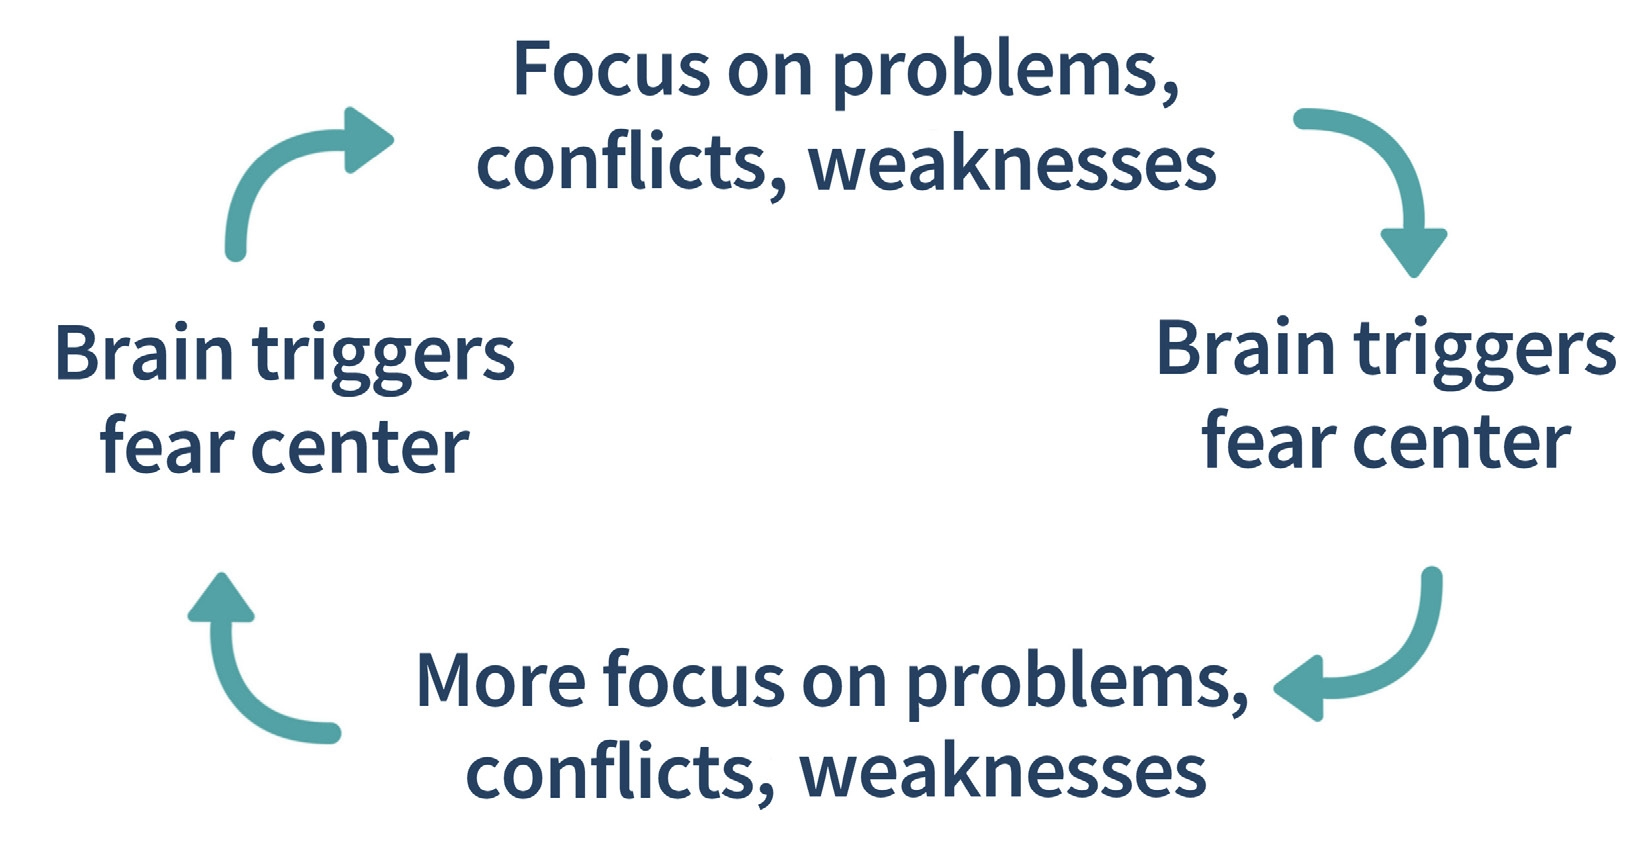 Brain loop cycle - focus on problems, brain triggers fear center, which leads to MORE focus on problems, and brain triggering more fear, etc.